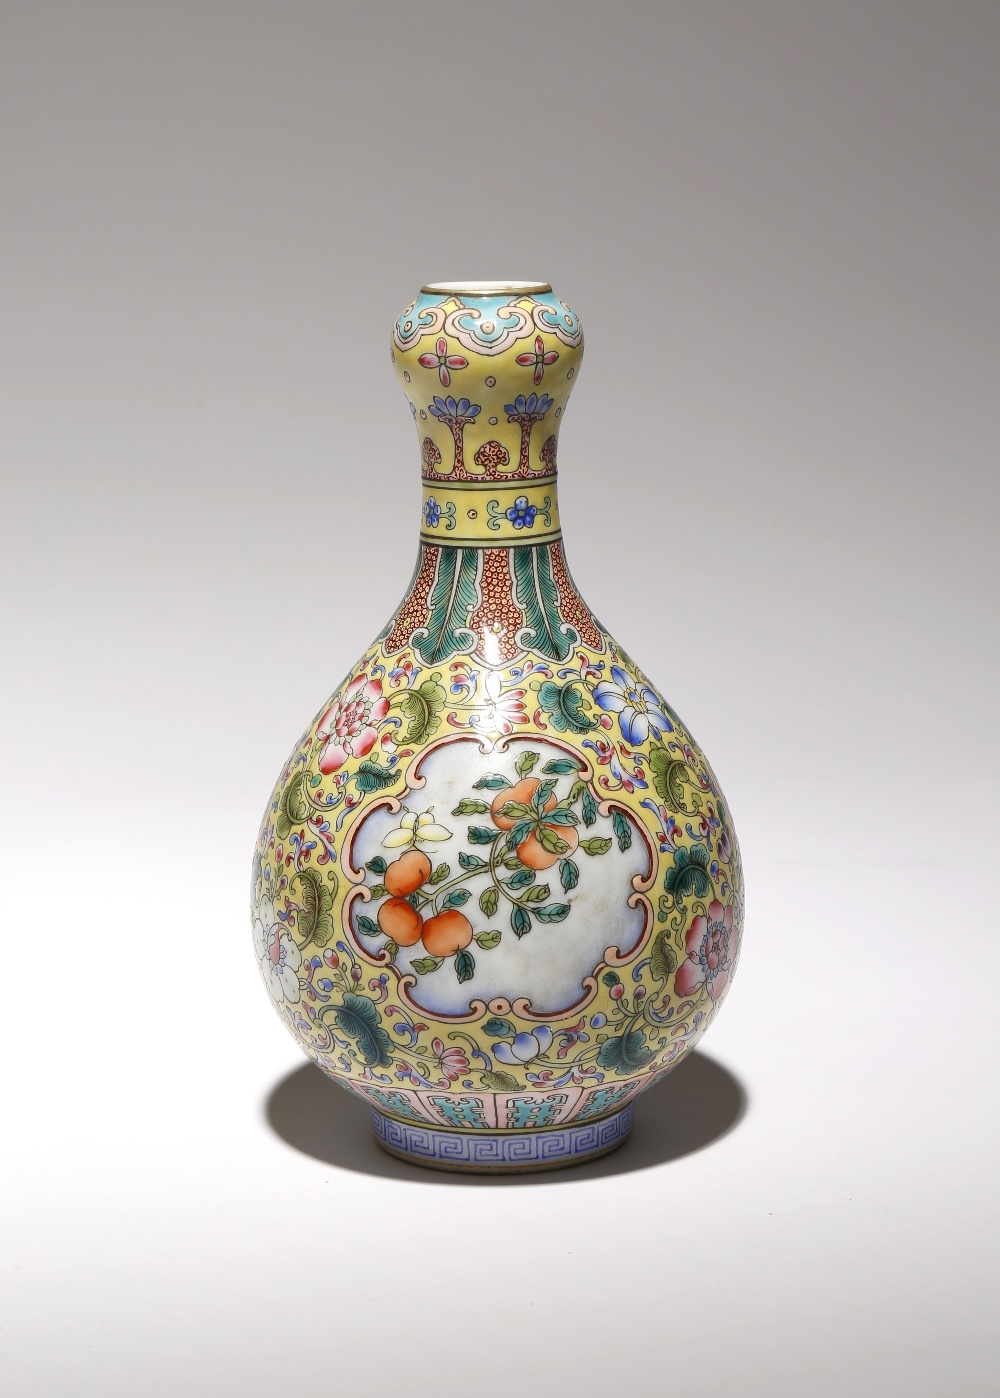 A CHINESE FAMILLE ROSE YELLOW-GROUND GARLIC-MOUTH BOTTLE VASE REPUBLIC PERIOD OR LATER The pear-